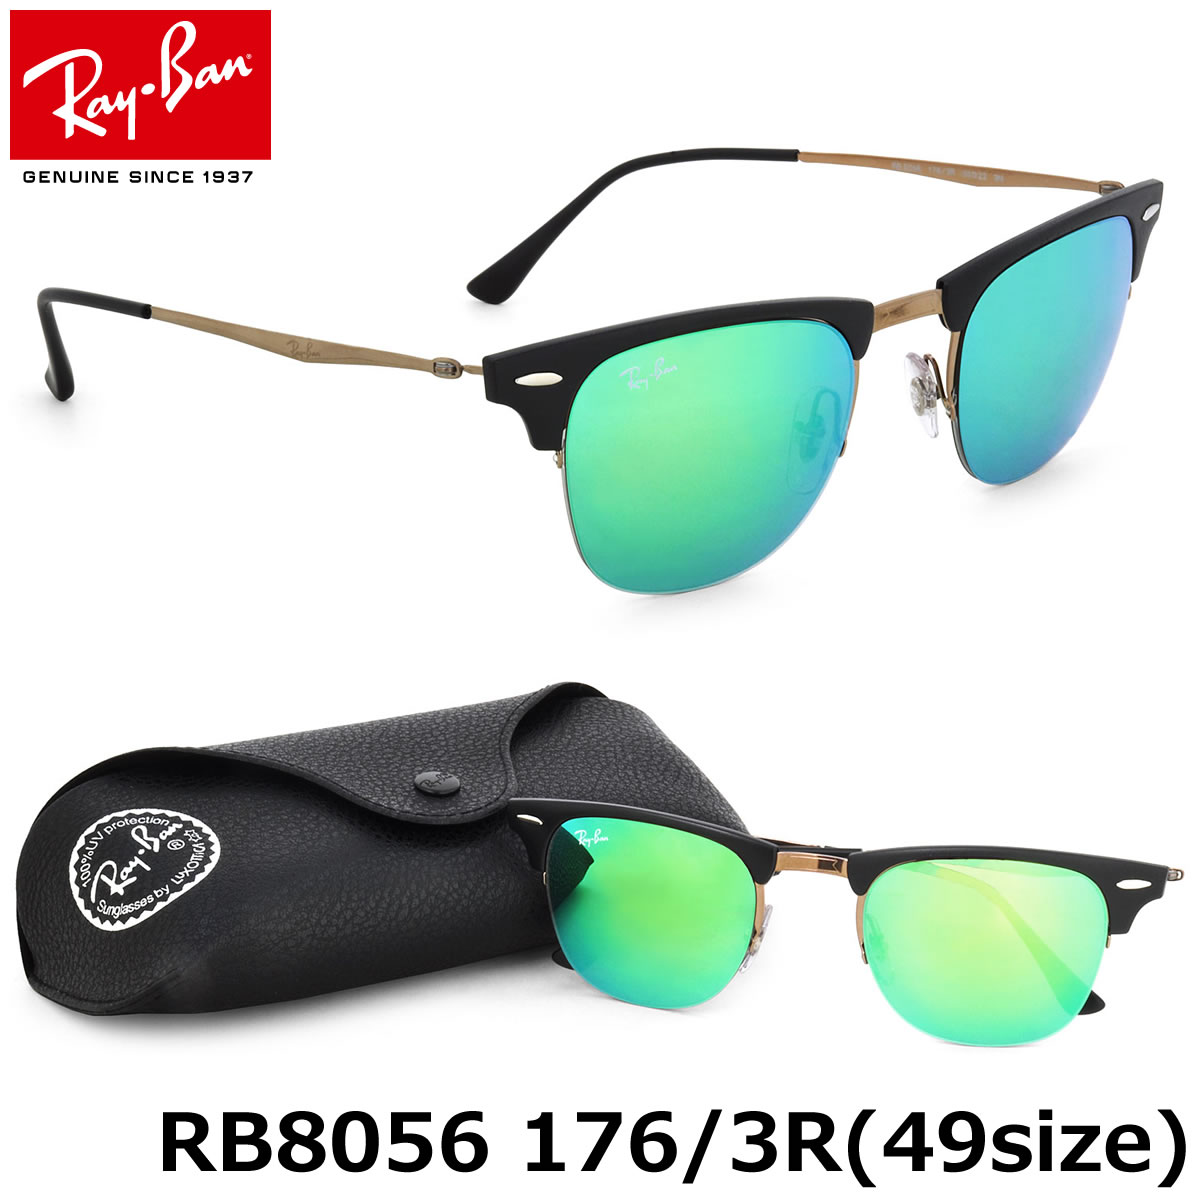 22d8eee915 Optical Shop Thats  Ray-Ban Sunglasses RB8056 176 3R 49size TECH ...